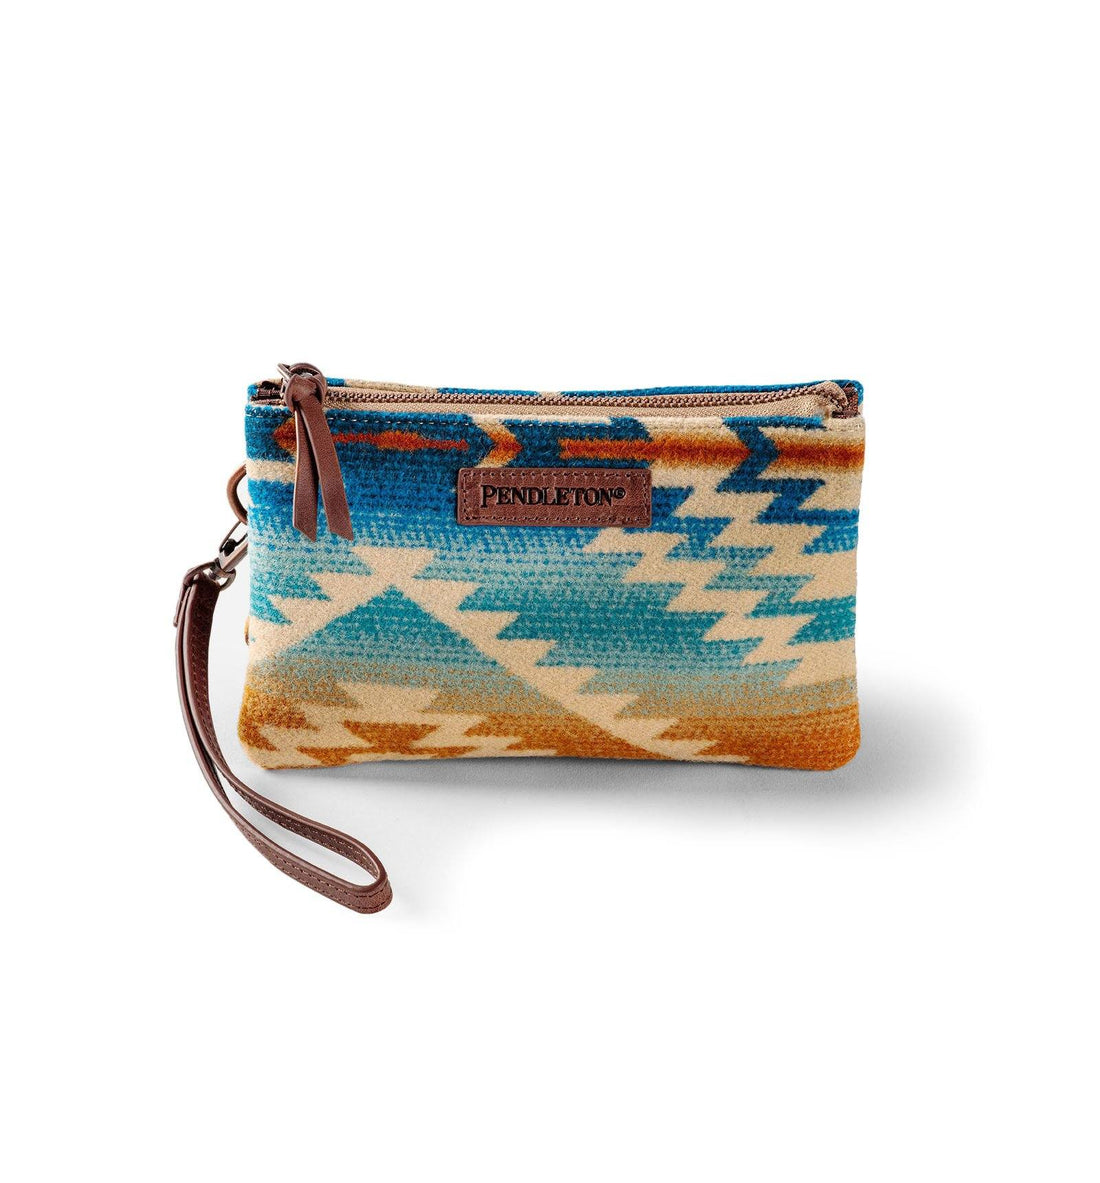 Pendleton Three Pocket Keeper - Pagosa Springs - Bags/Luggage - Iron and Resin